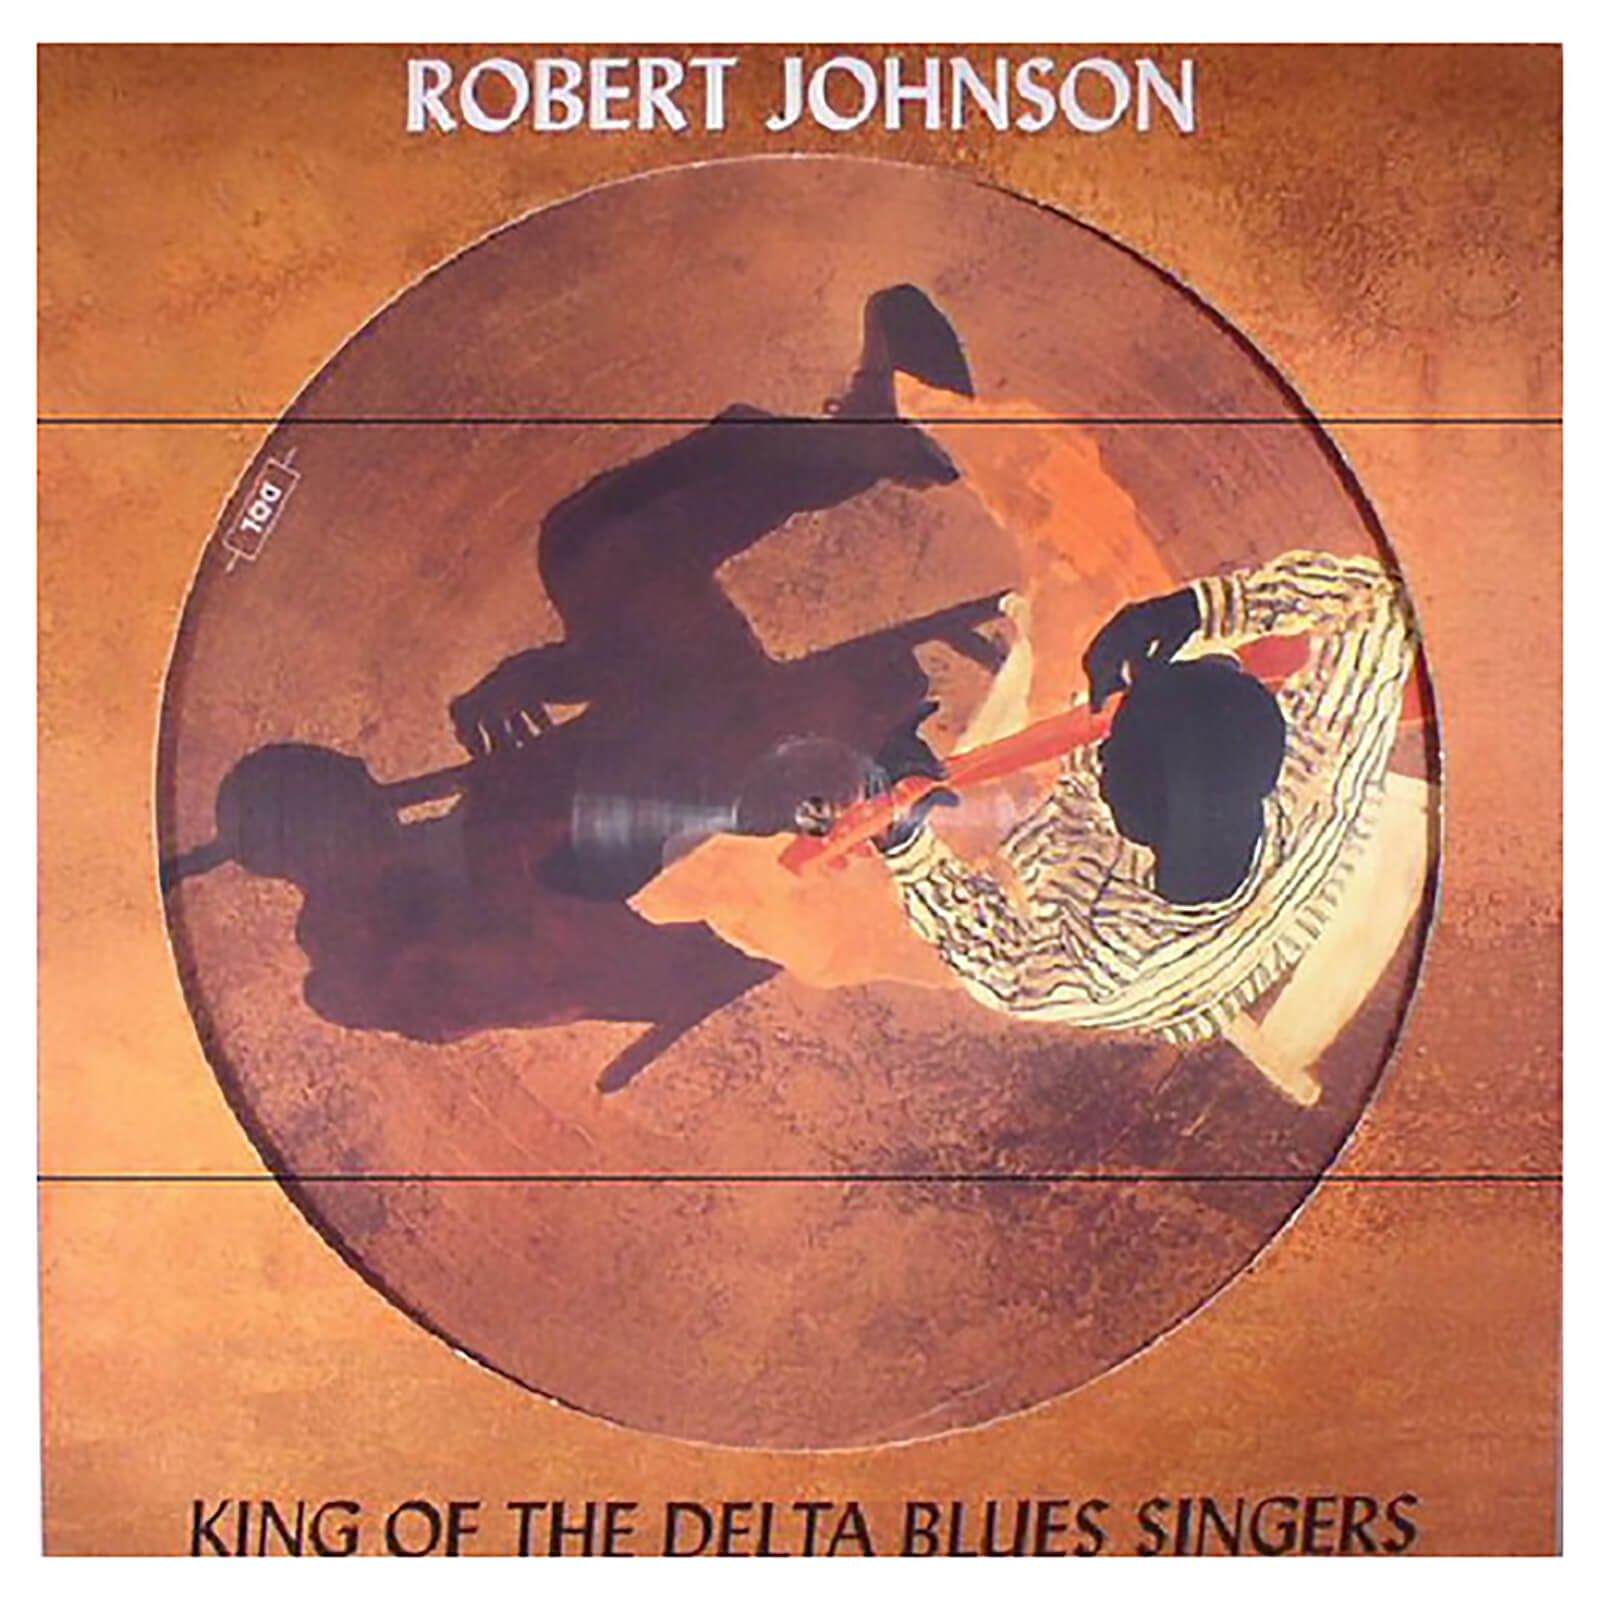 Robert Johnson - King Of The Delta Blues Singers - Vinyl